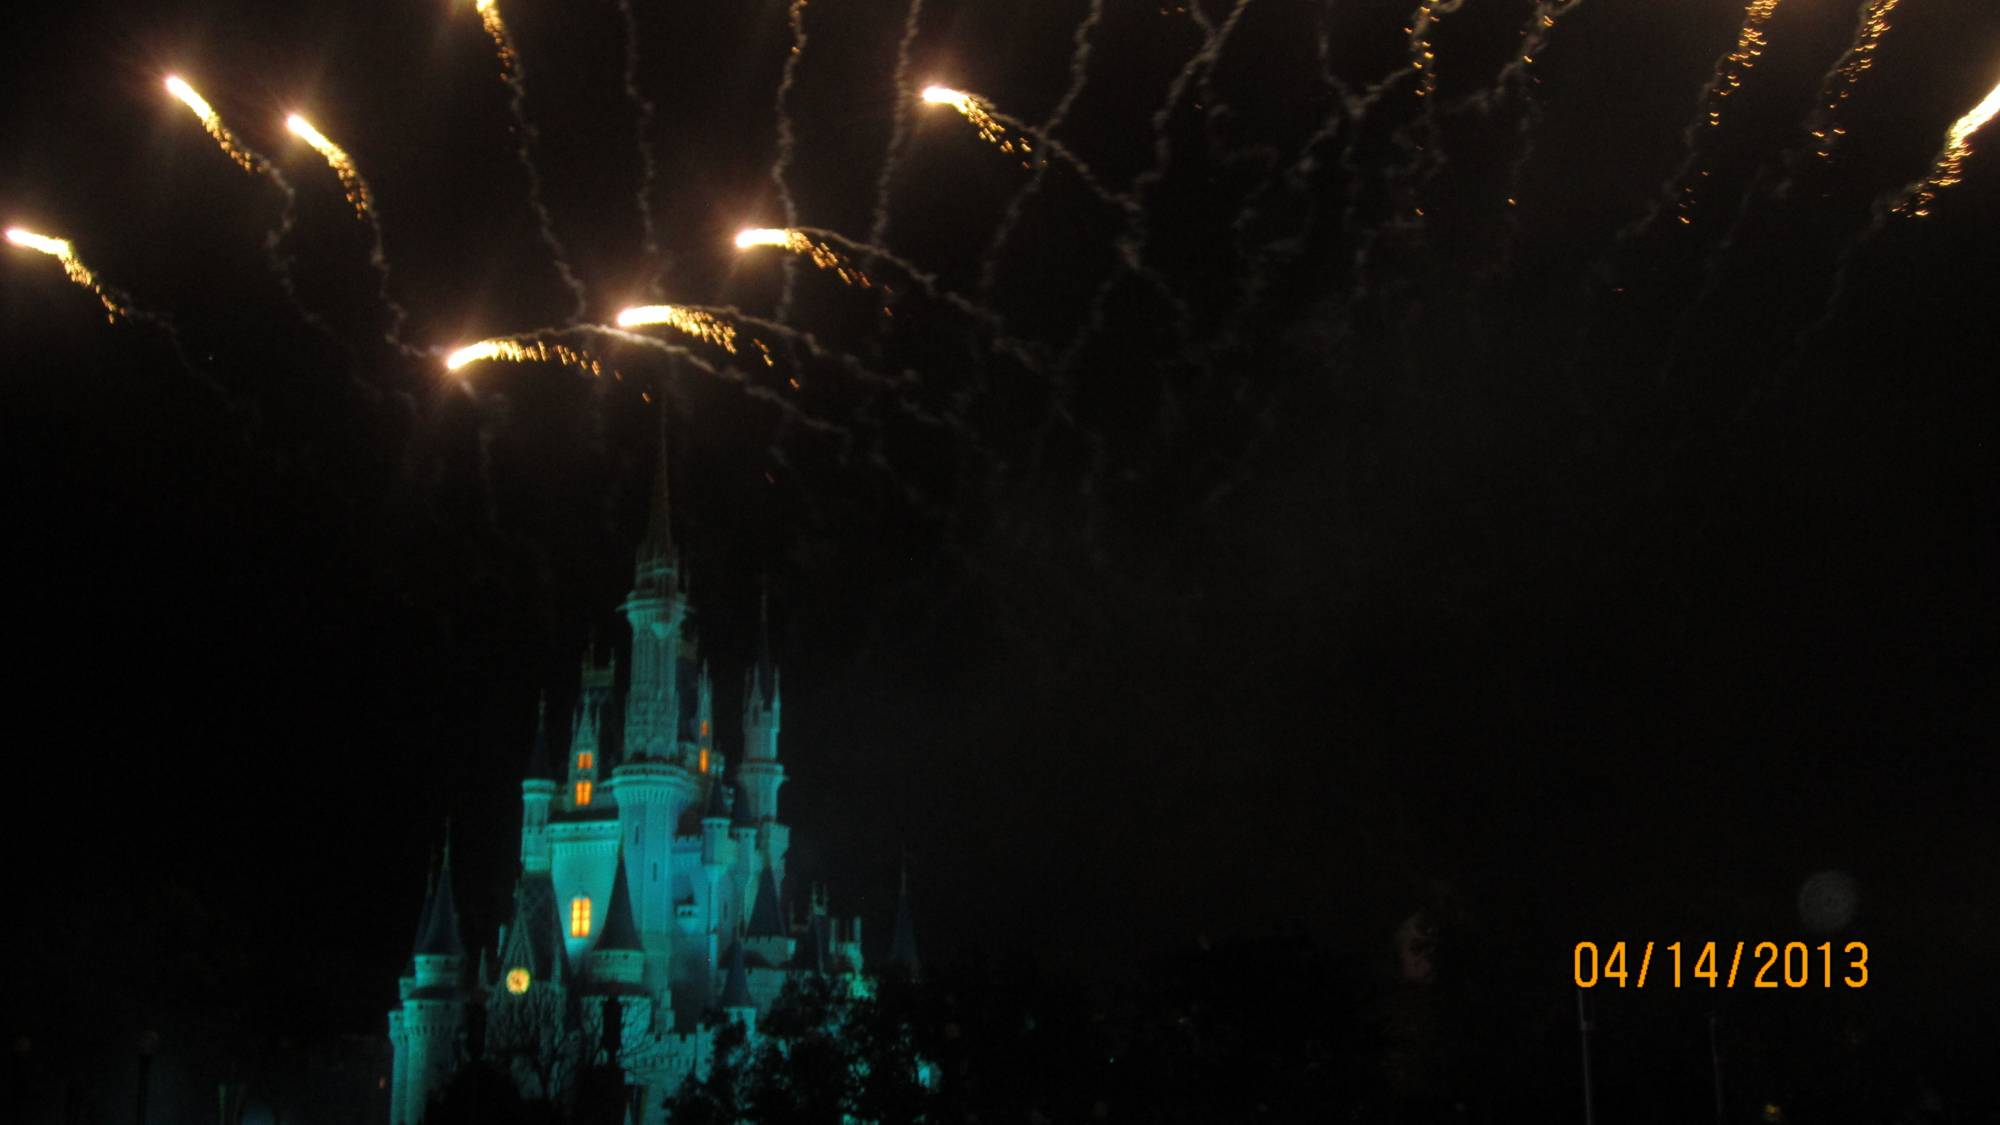 Get a fantastic view of 'Wishes' from the Tomorrowland Terrace Dessert Party in the Magic Kingdom | PassPorter.com